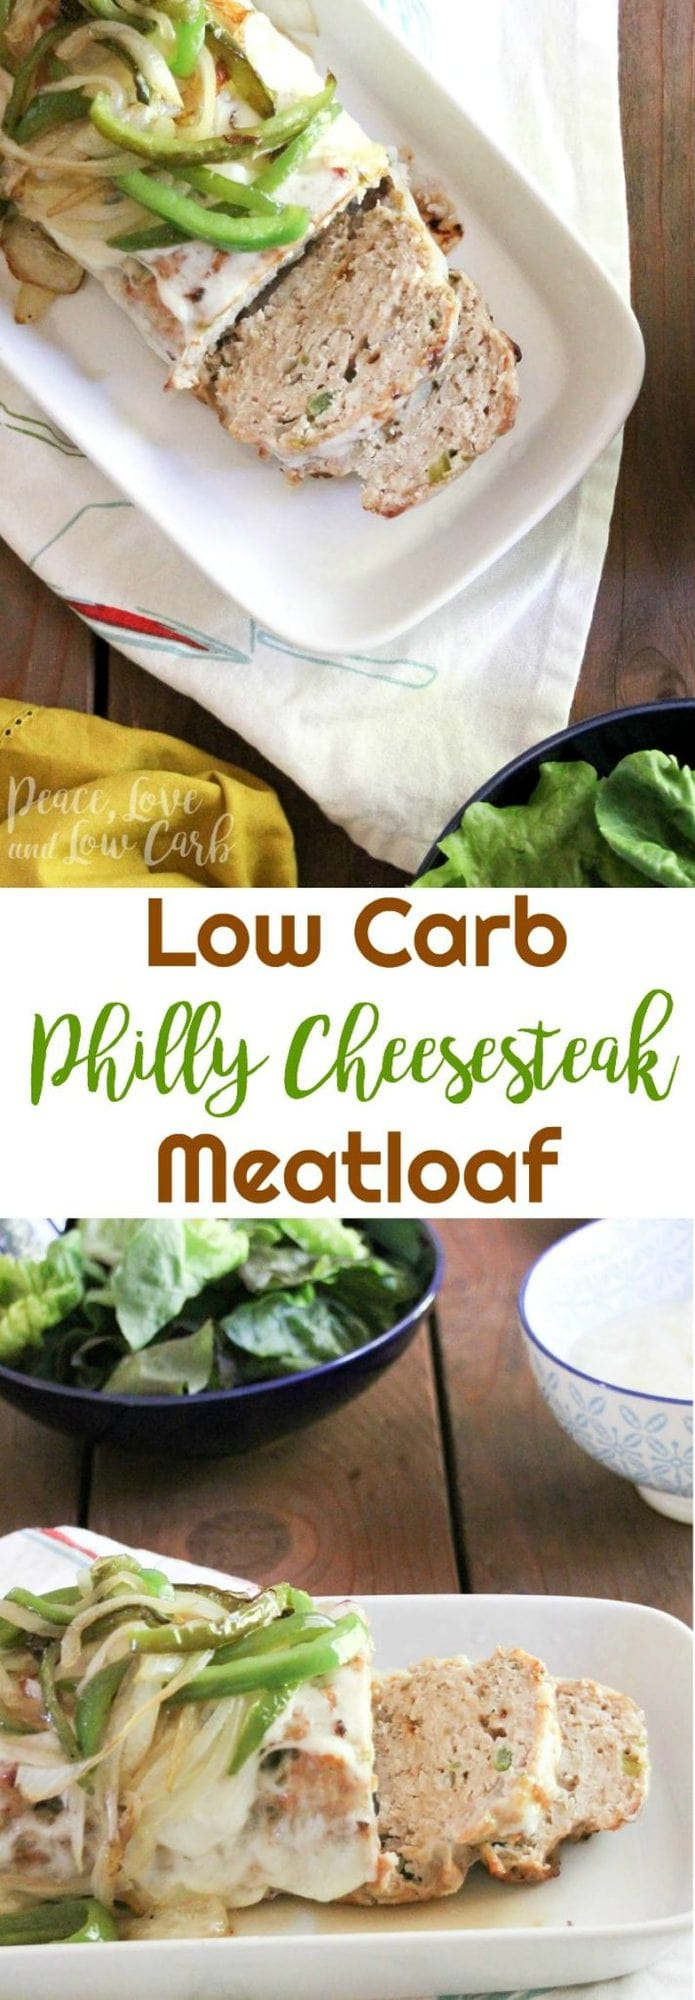 Low Carb Philly Cheesesteak Meatloaf | Peace Love and Low Carb